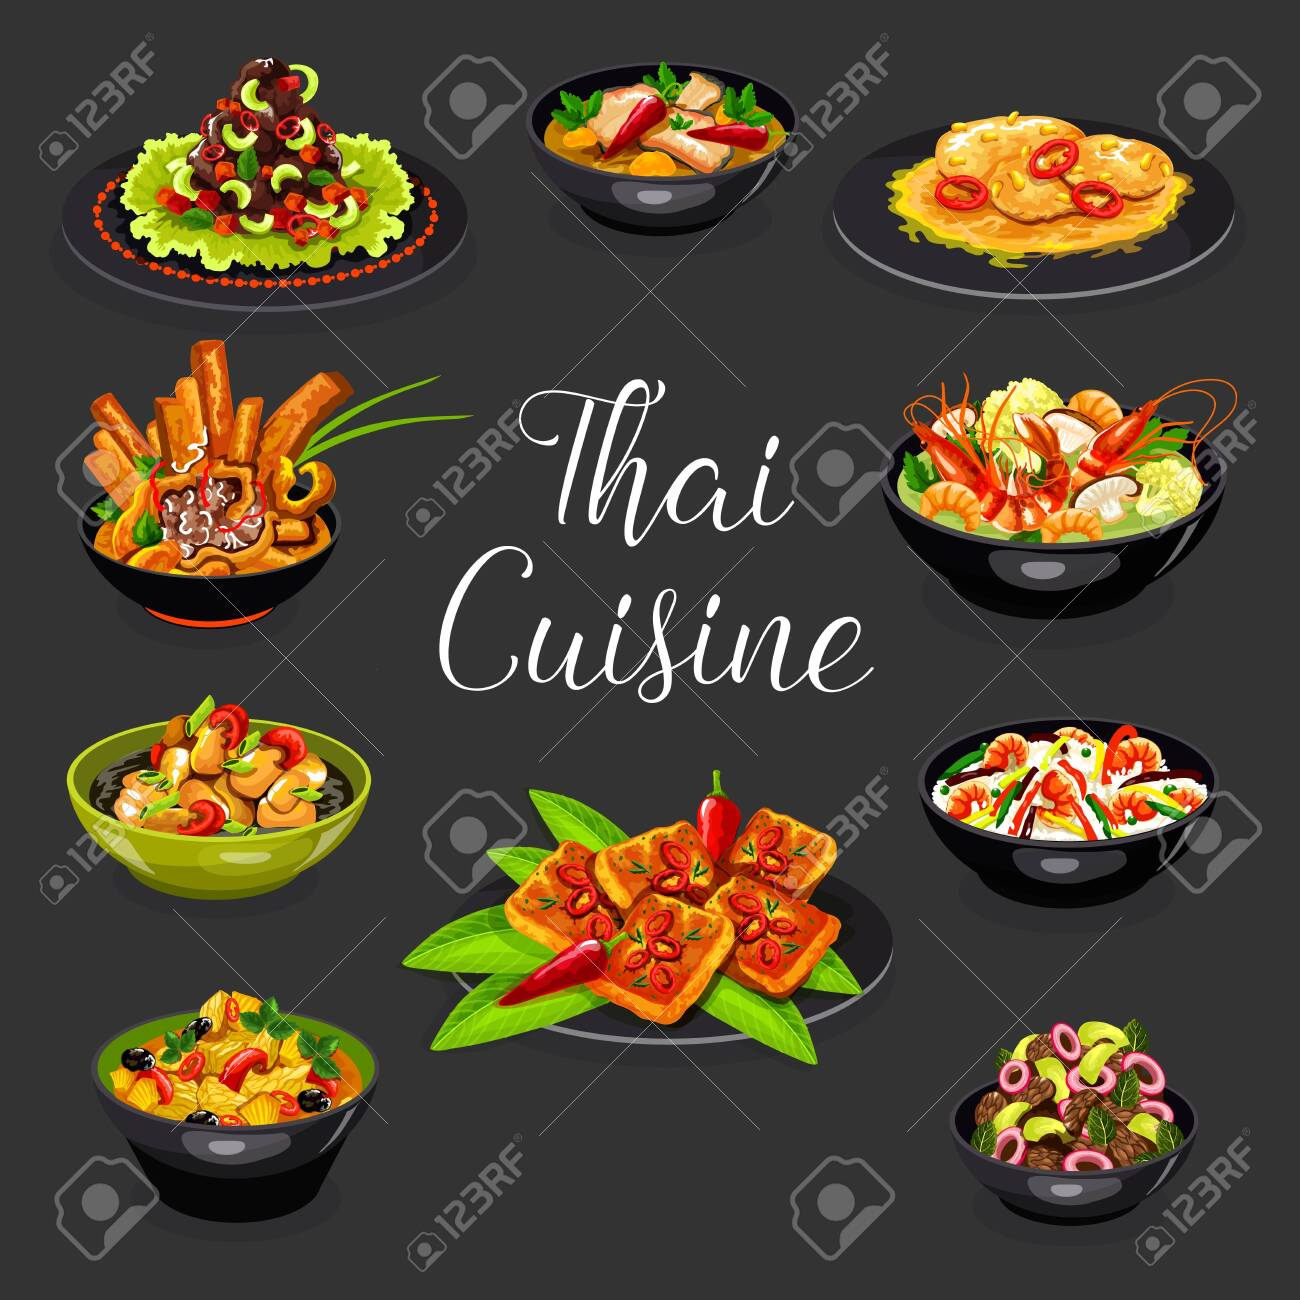 Thai suicune vector design of asian seafood and meat dishes. Hot soups of shrimp tom yum, chilli meat, chicken curry with pineapple and fried rice, chicken noodle, pork with peanut sauce, beef salad - 128162084